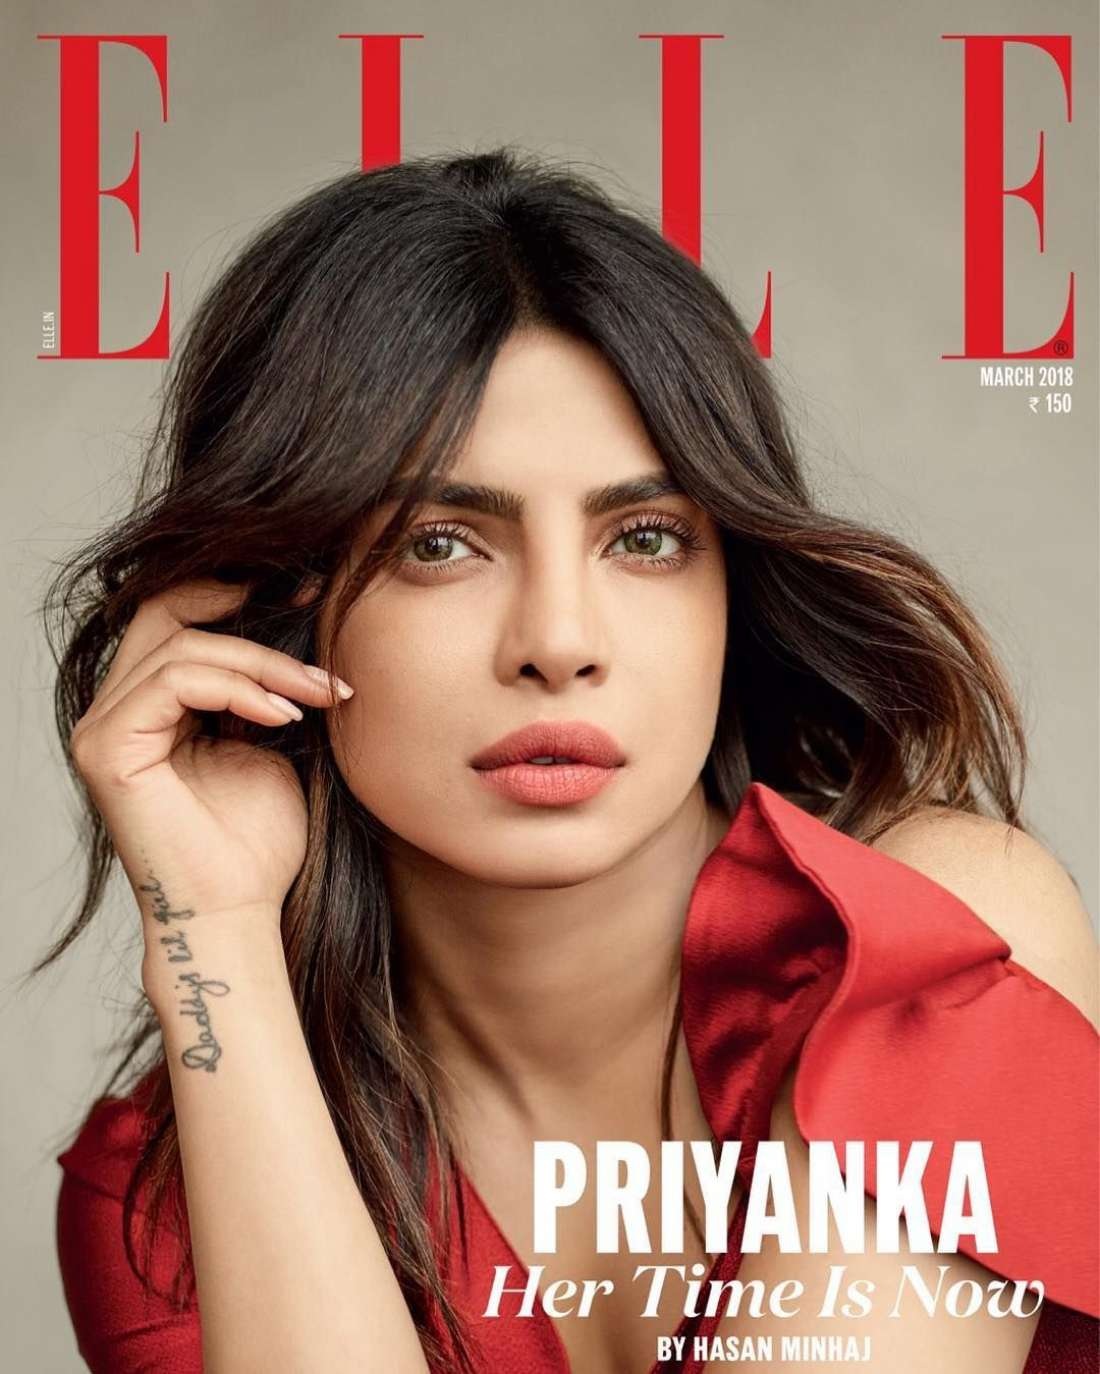 Priyanka Chopra covers Elle India March 2018